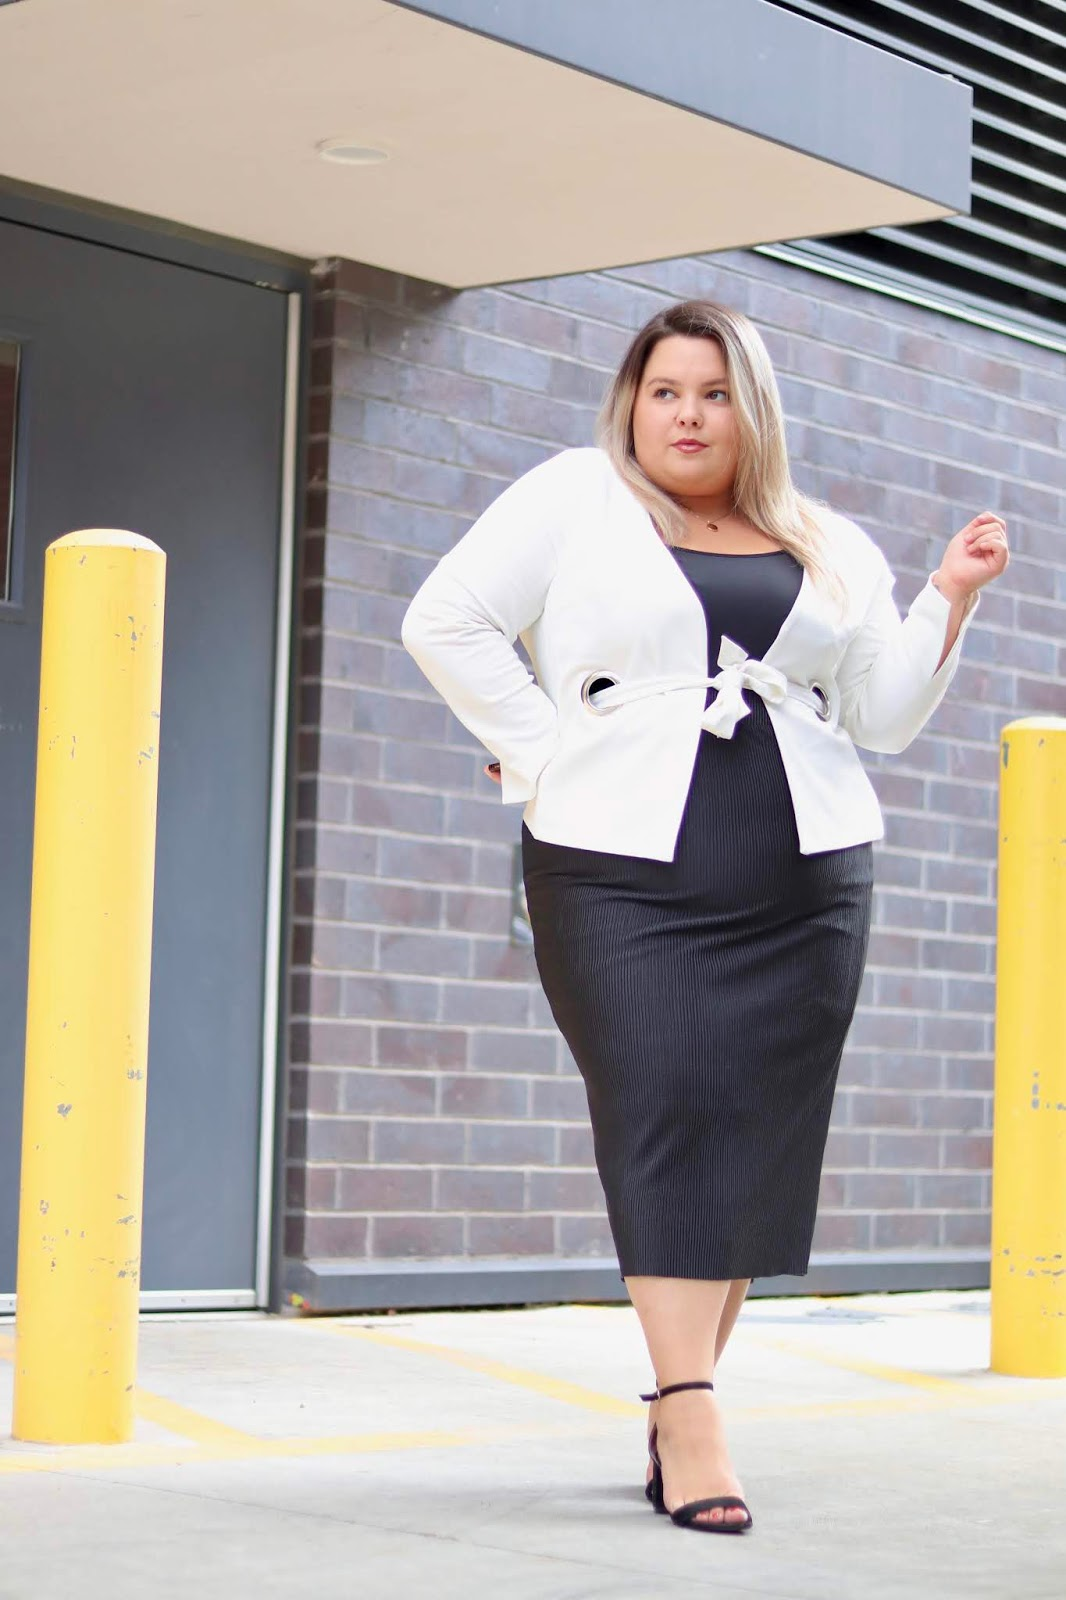 Chicago Plus Size Petite Fashion Blogger, influencer, YouTuber, and model Natalie Craig, of Natalie in the City, reviews Soncy's Ribbed Pencil Skirt and Tie Another Day Collarless Blazer and work attire.